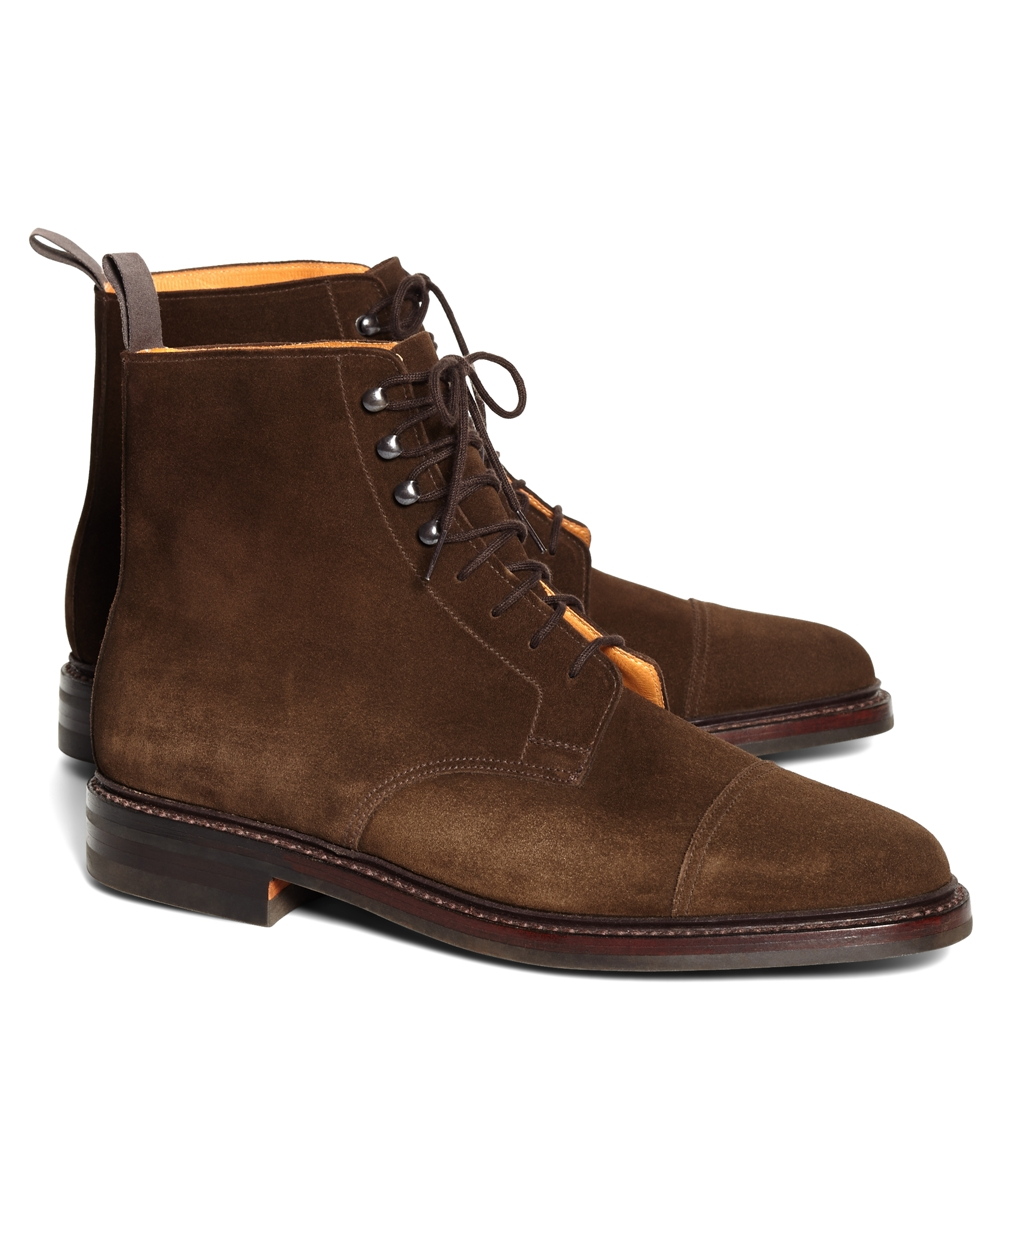 Brooks Brothers Men's Peal & Co. Derby Boots